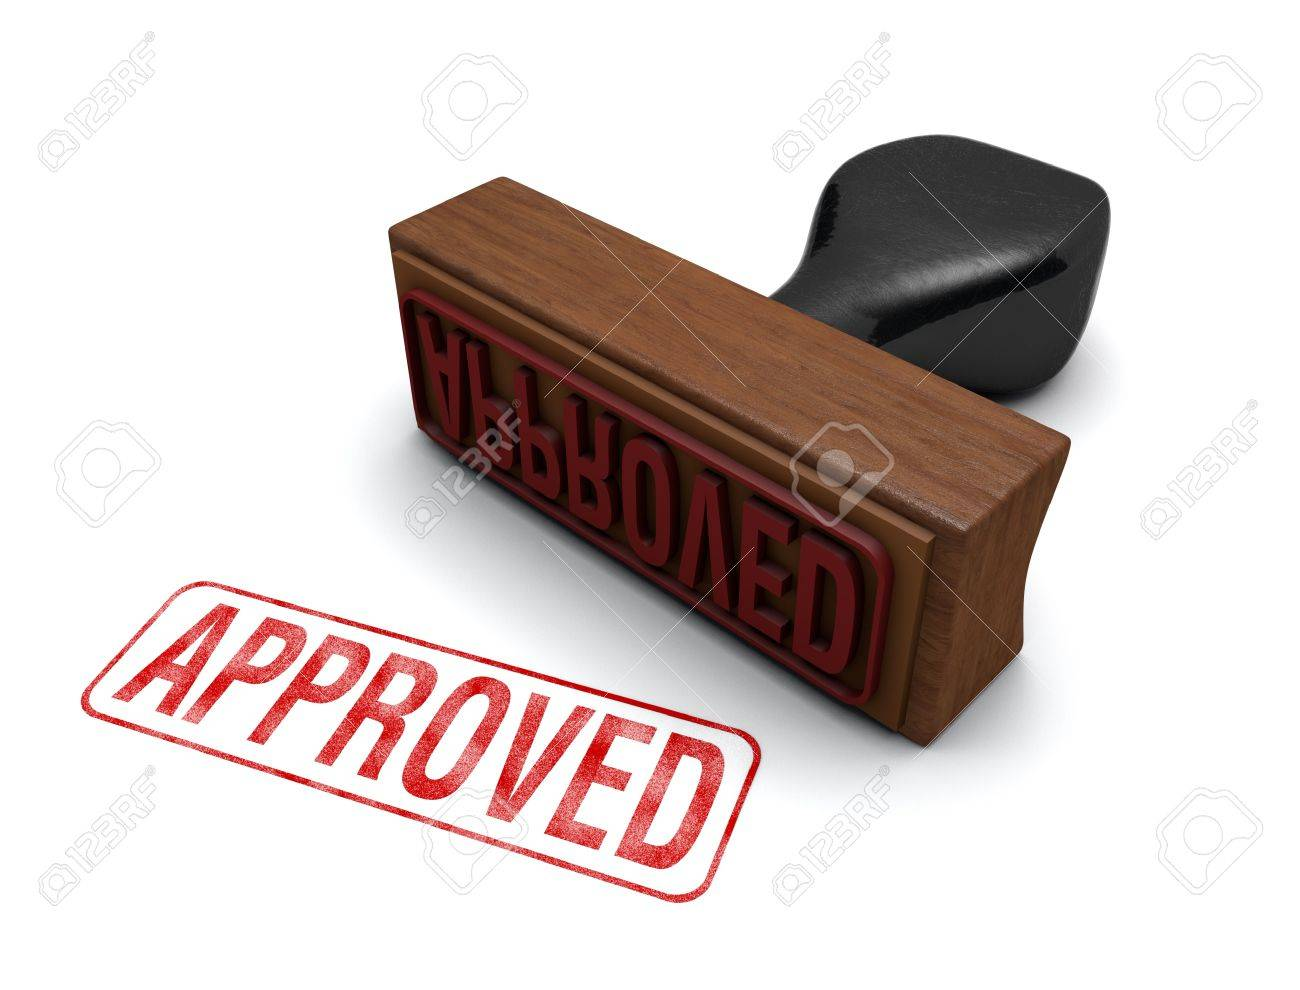 rubber stamp that says approved stamped in red letters on a